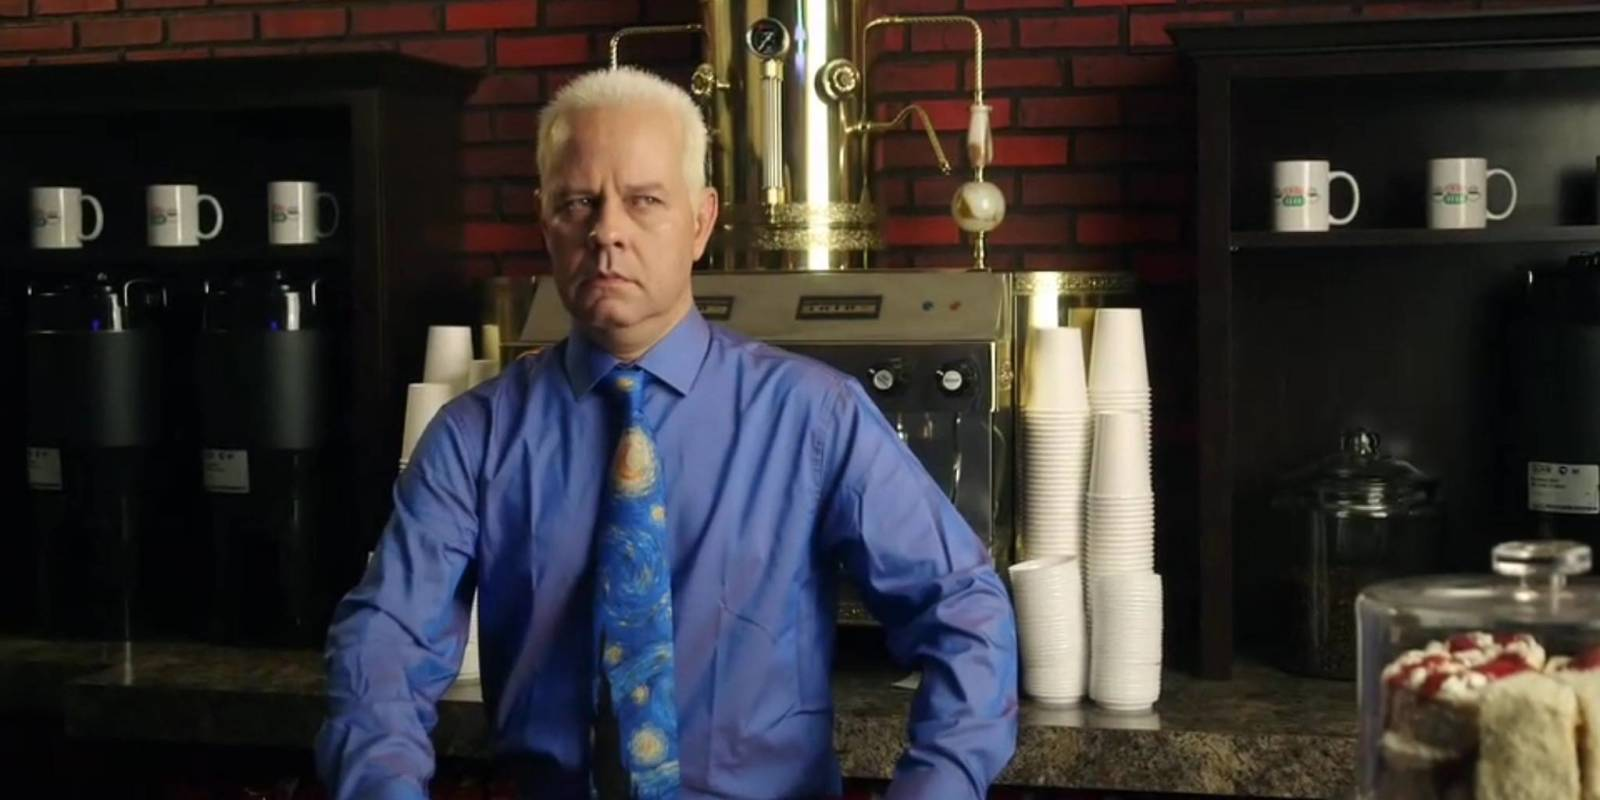 Gunther stars in new Friends promo for Netflix